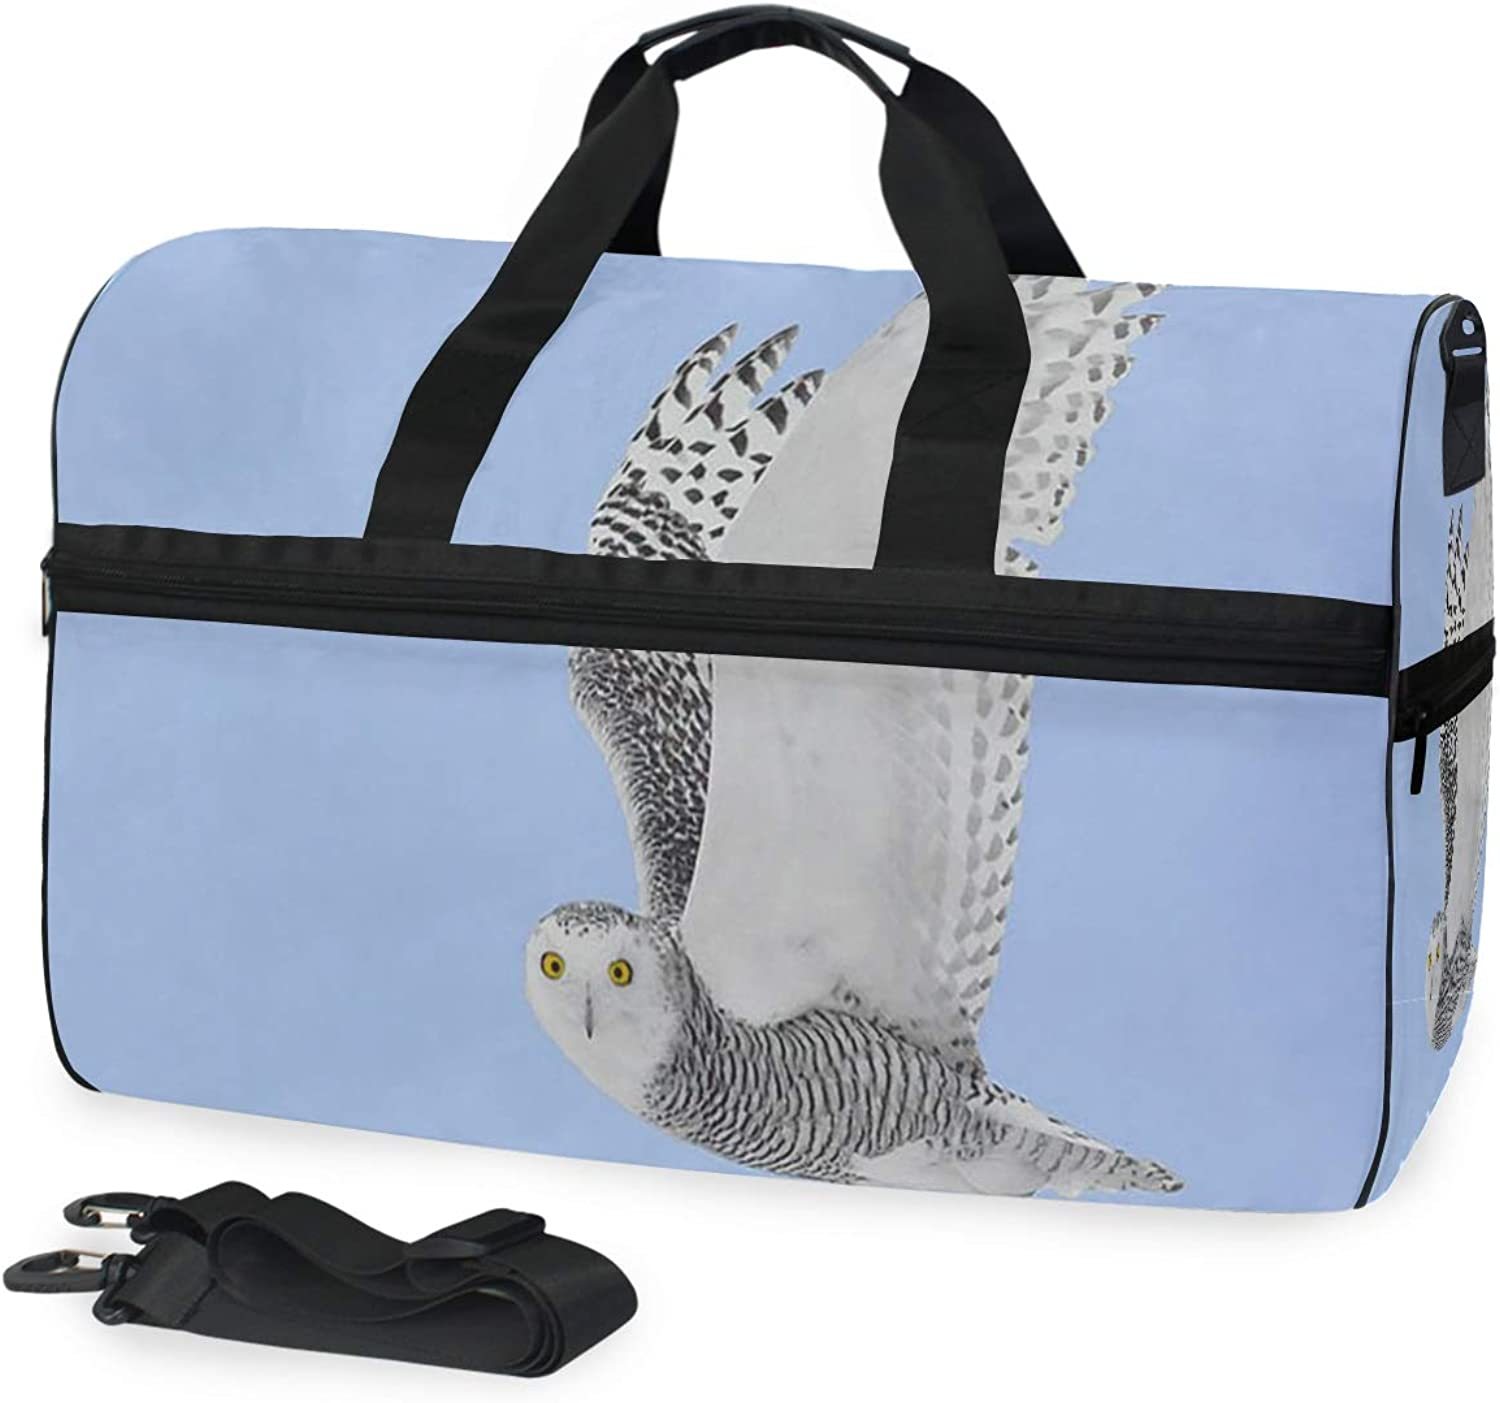 Gym Bag Owl Sport Travel Duffel Bag with Compartment Large